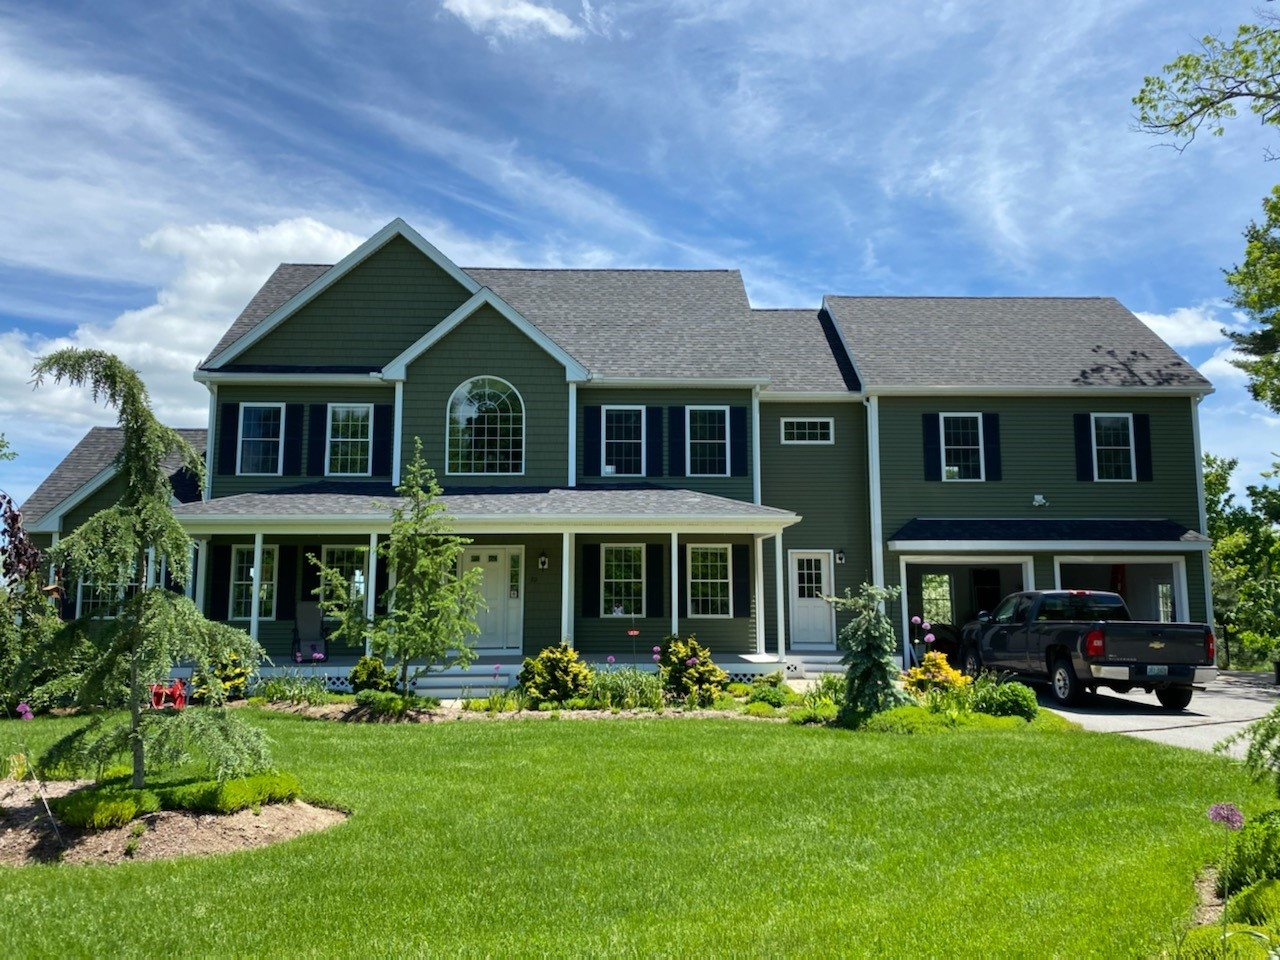 MLS 4808597: 20 Harvest Drive, Derry NH